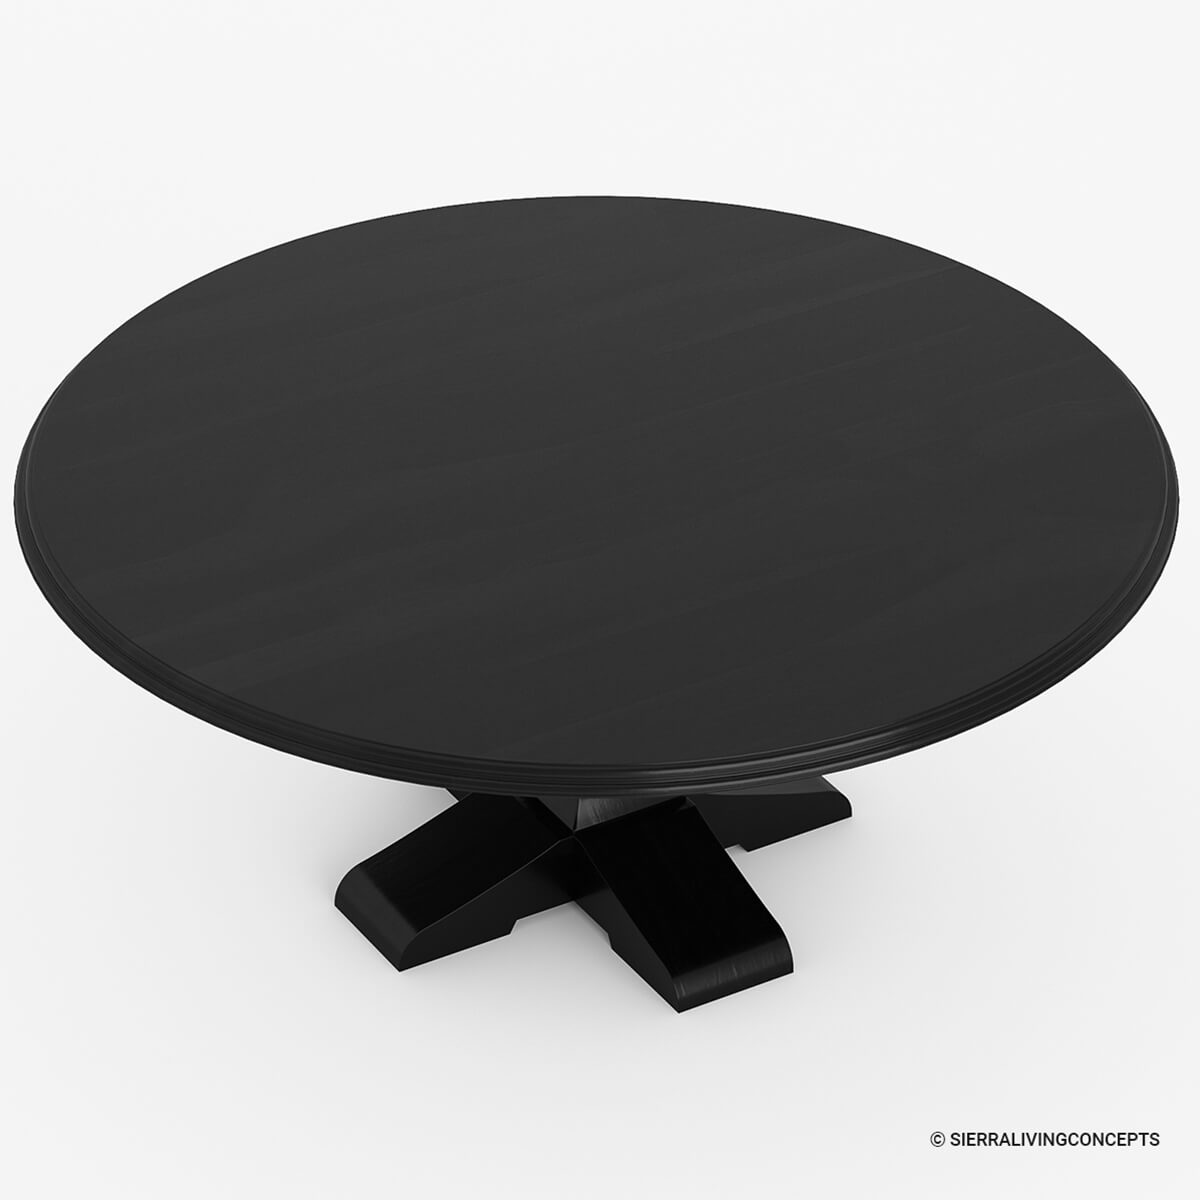 10 Round Table.Sierra Nevada Rustic Solid Wood Large Round Dining Table For 10 People